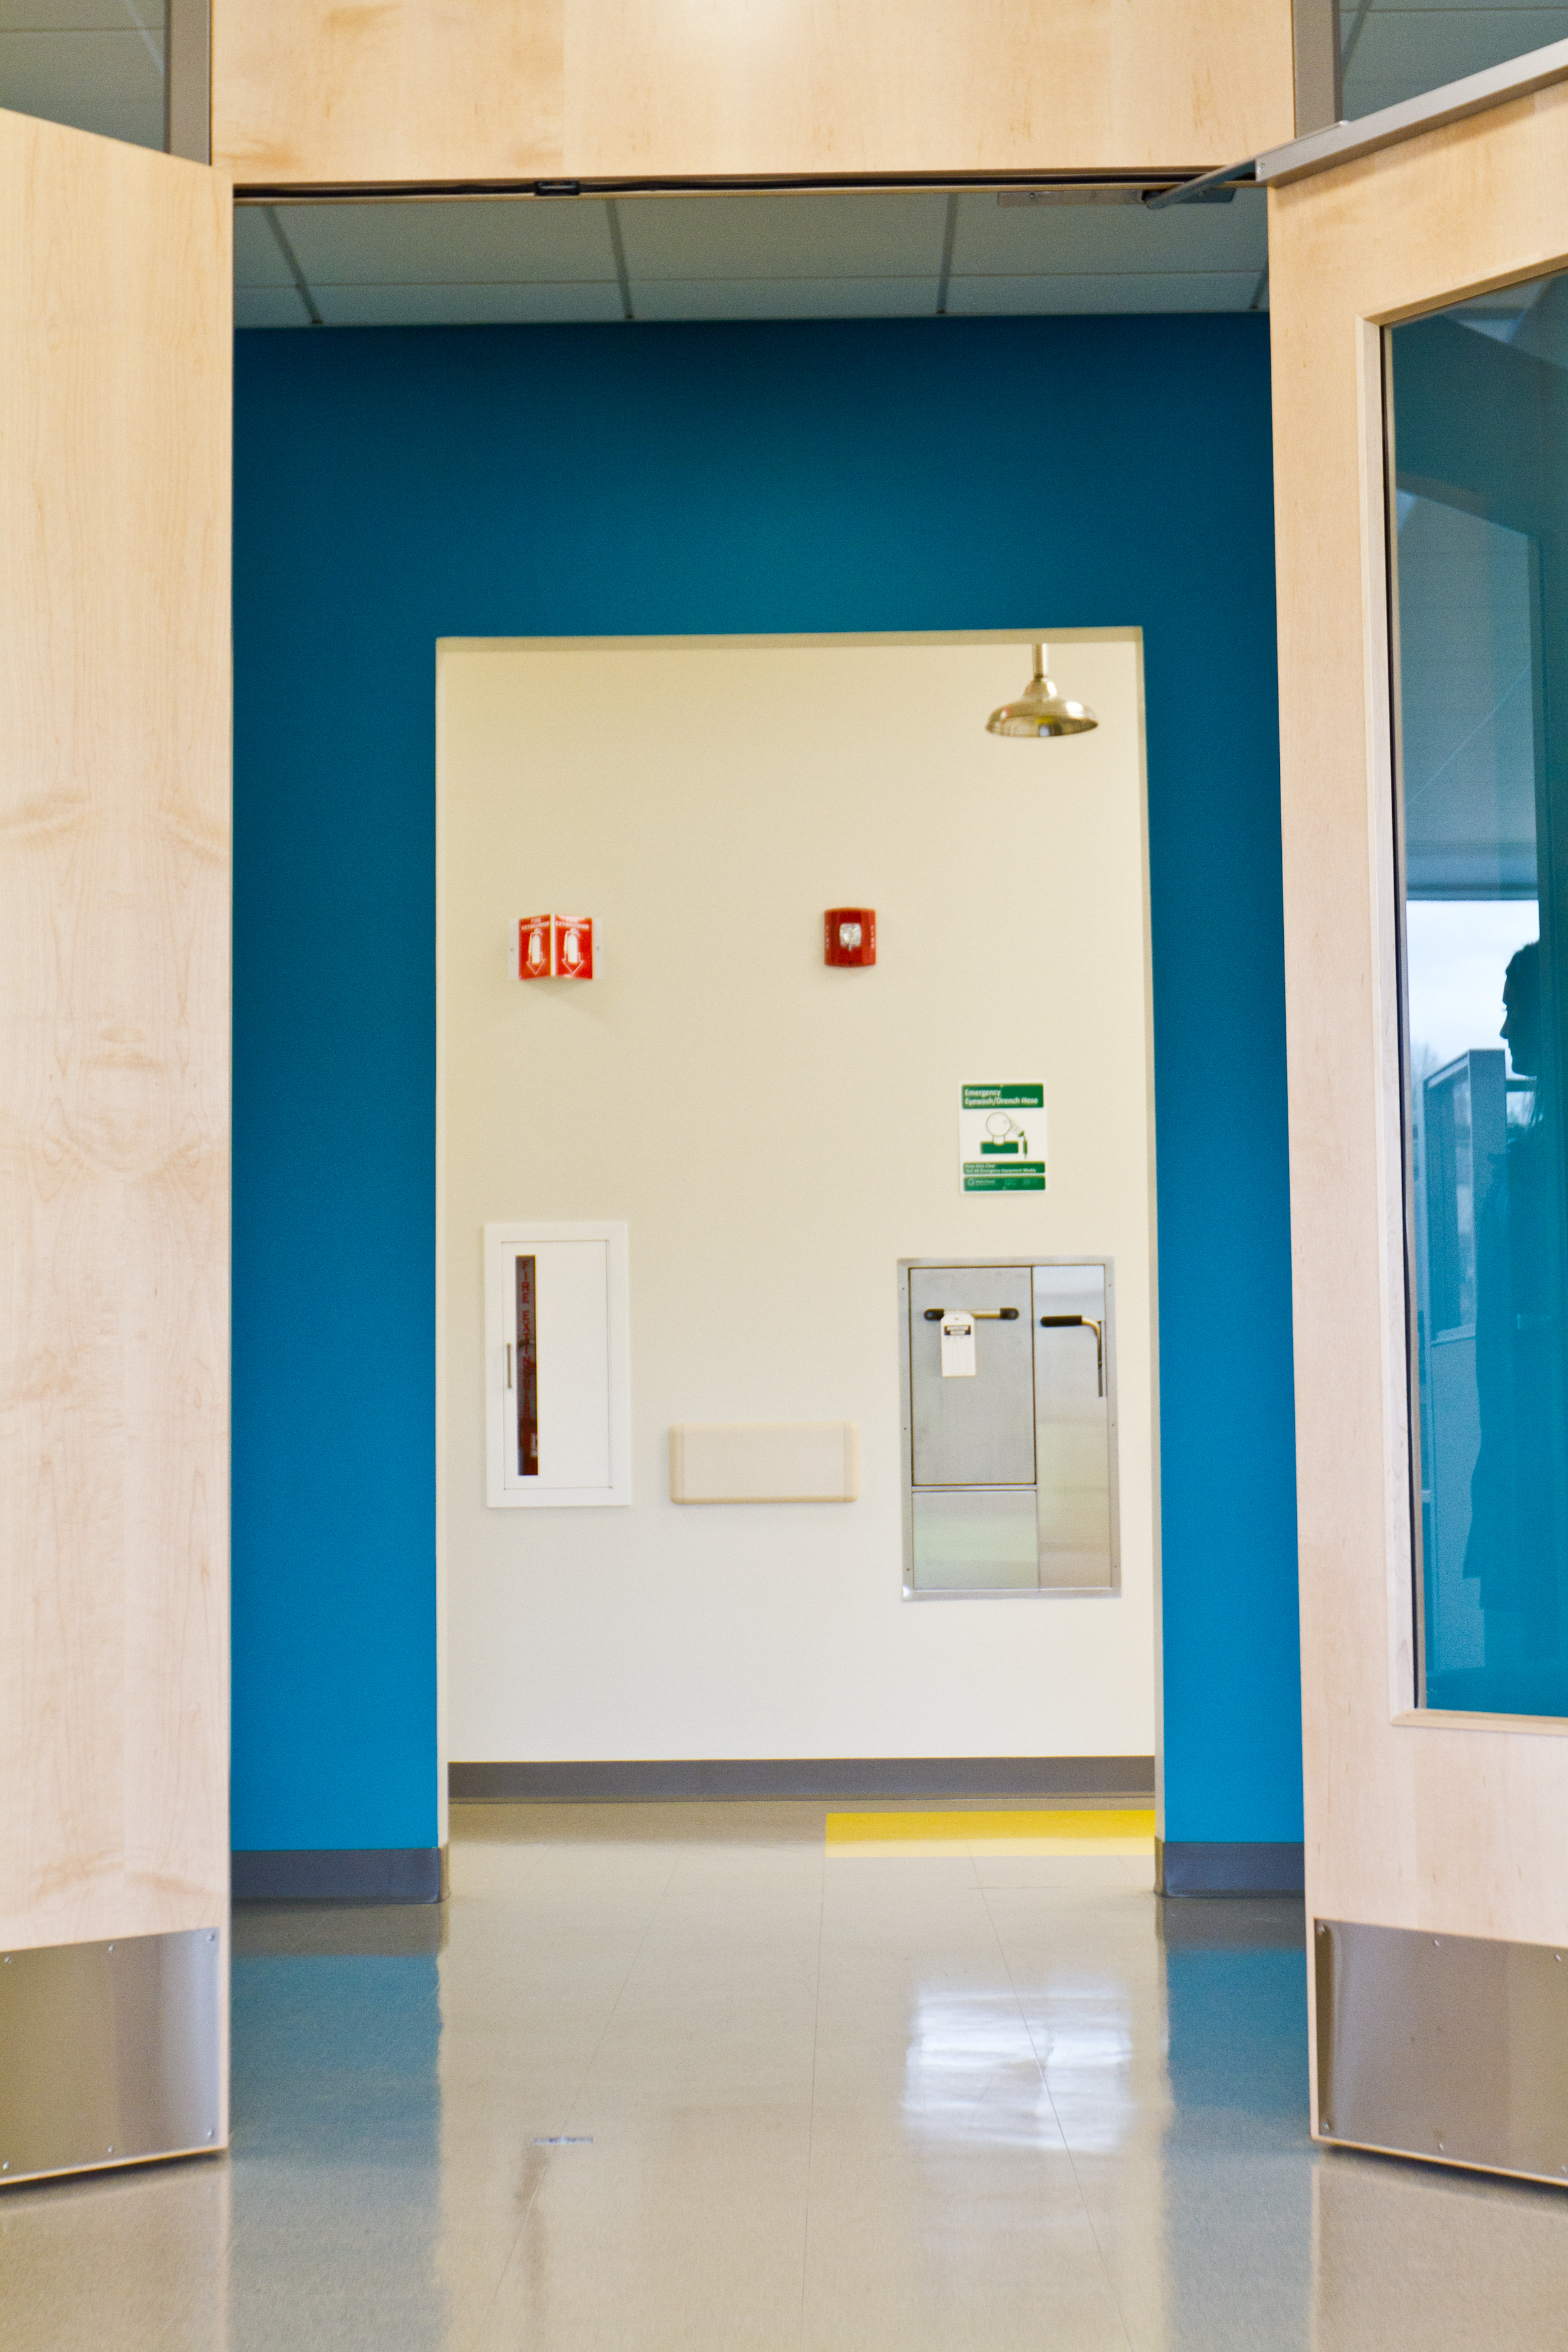 Kaloutas painting services in a pharmaceutical facility.